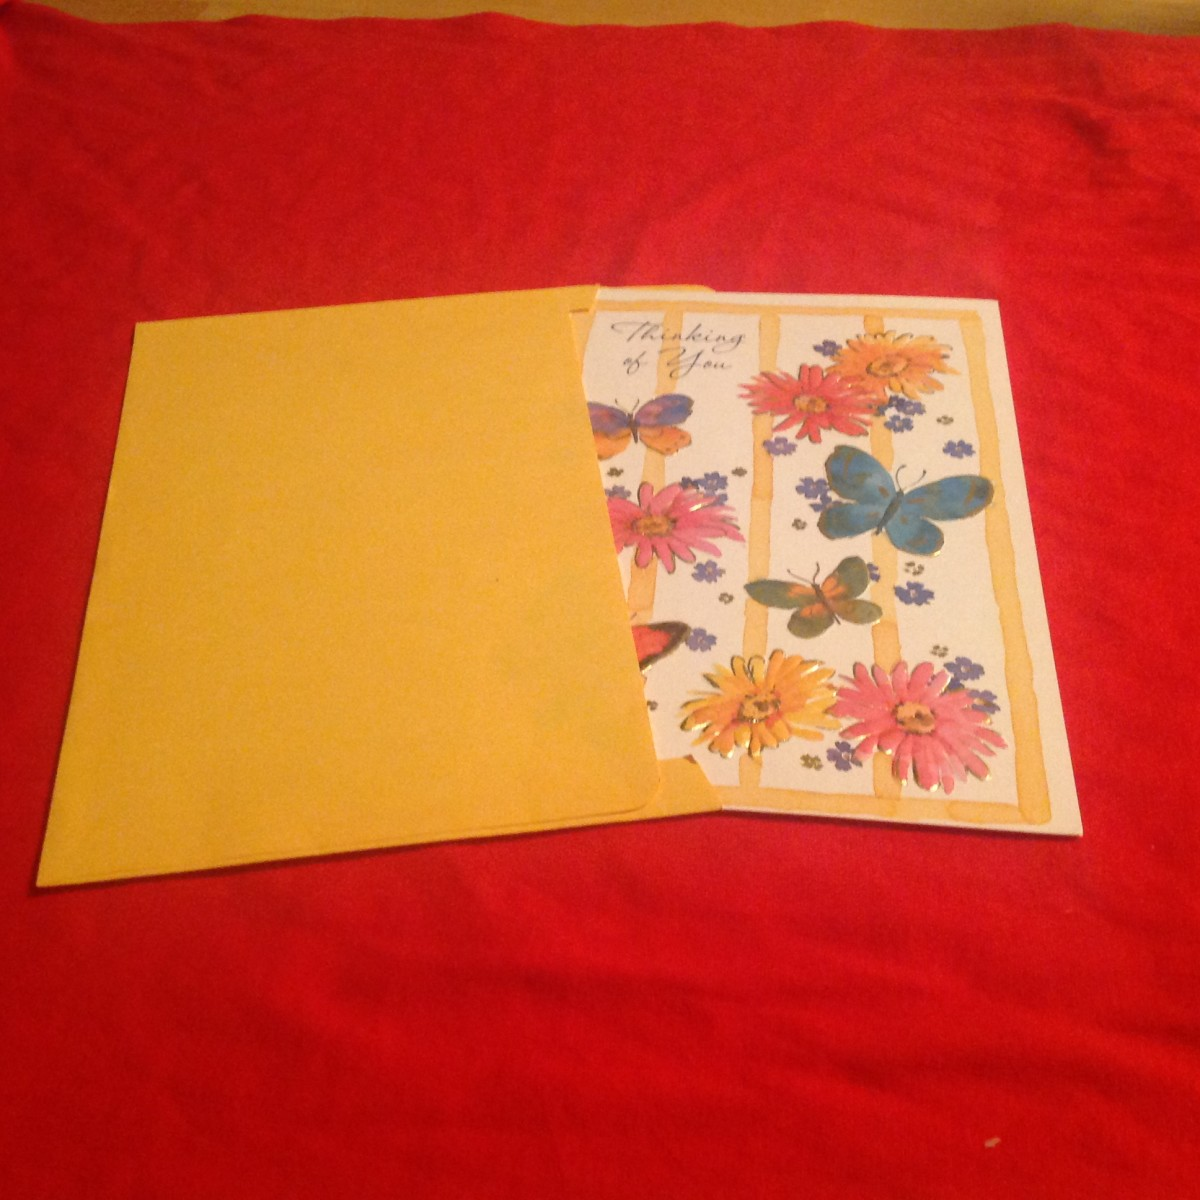 Example two: Is this the right way to put a folded greeting card in its envelope?